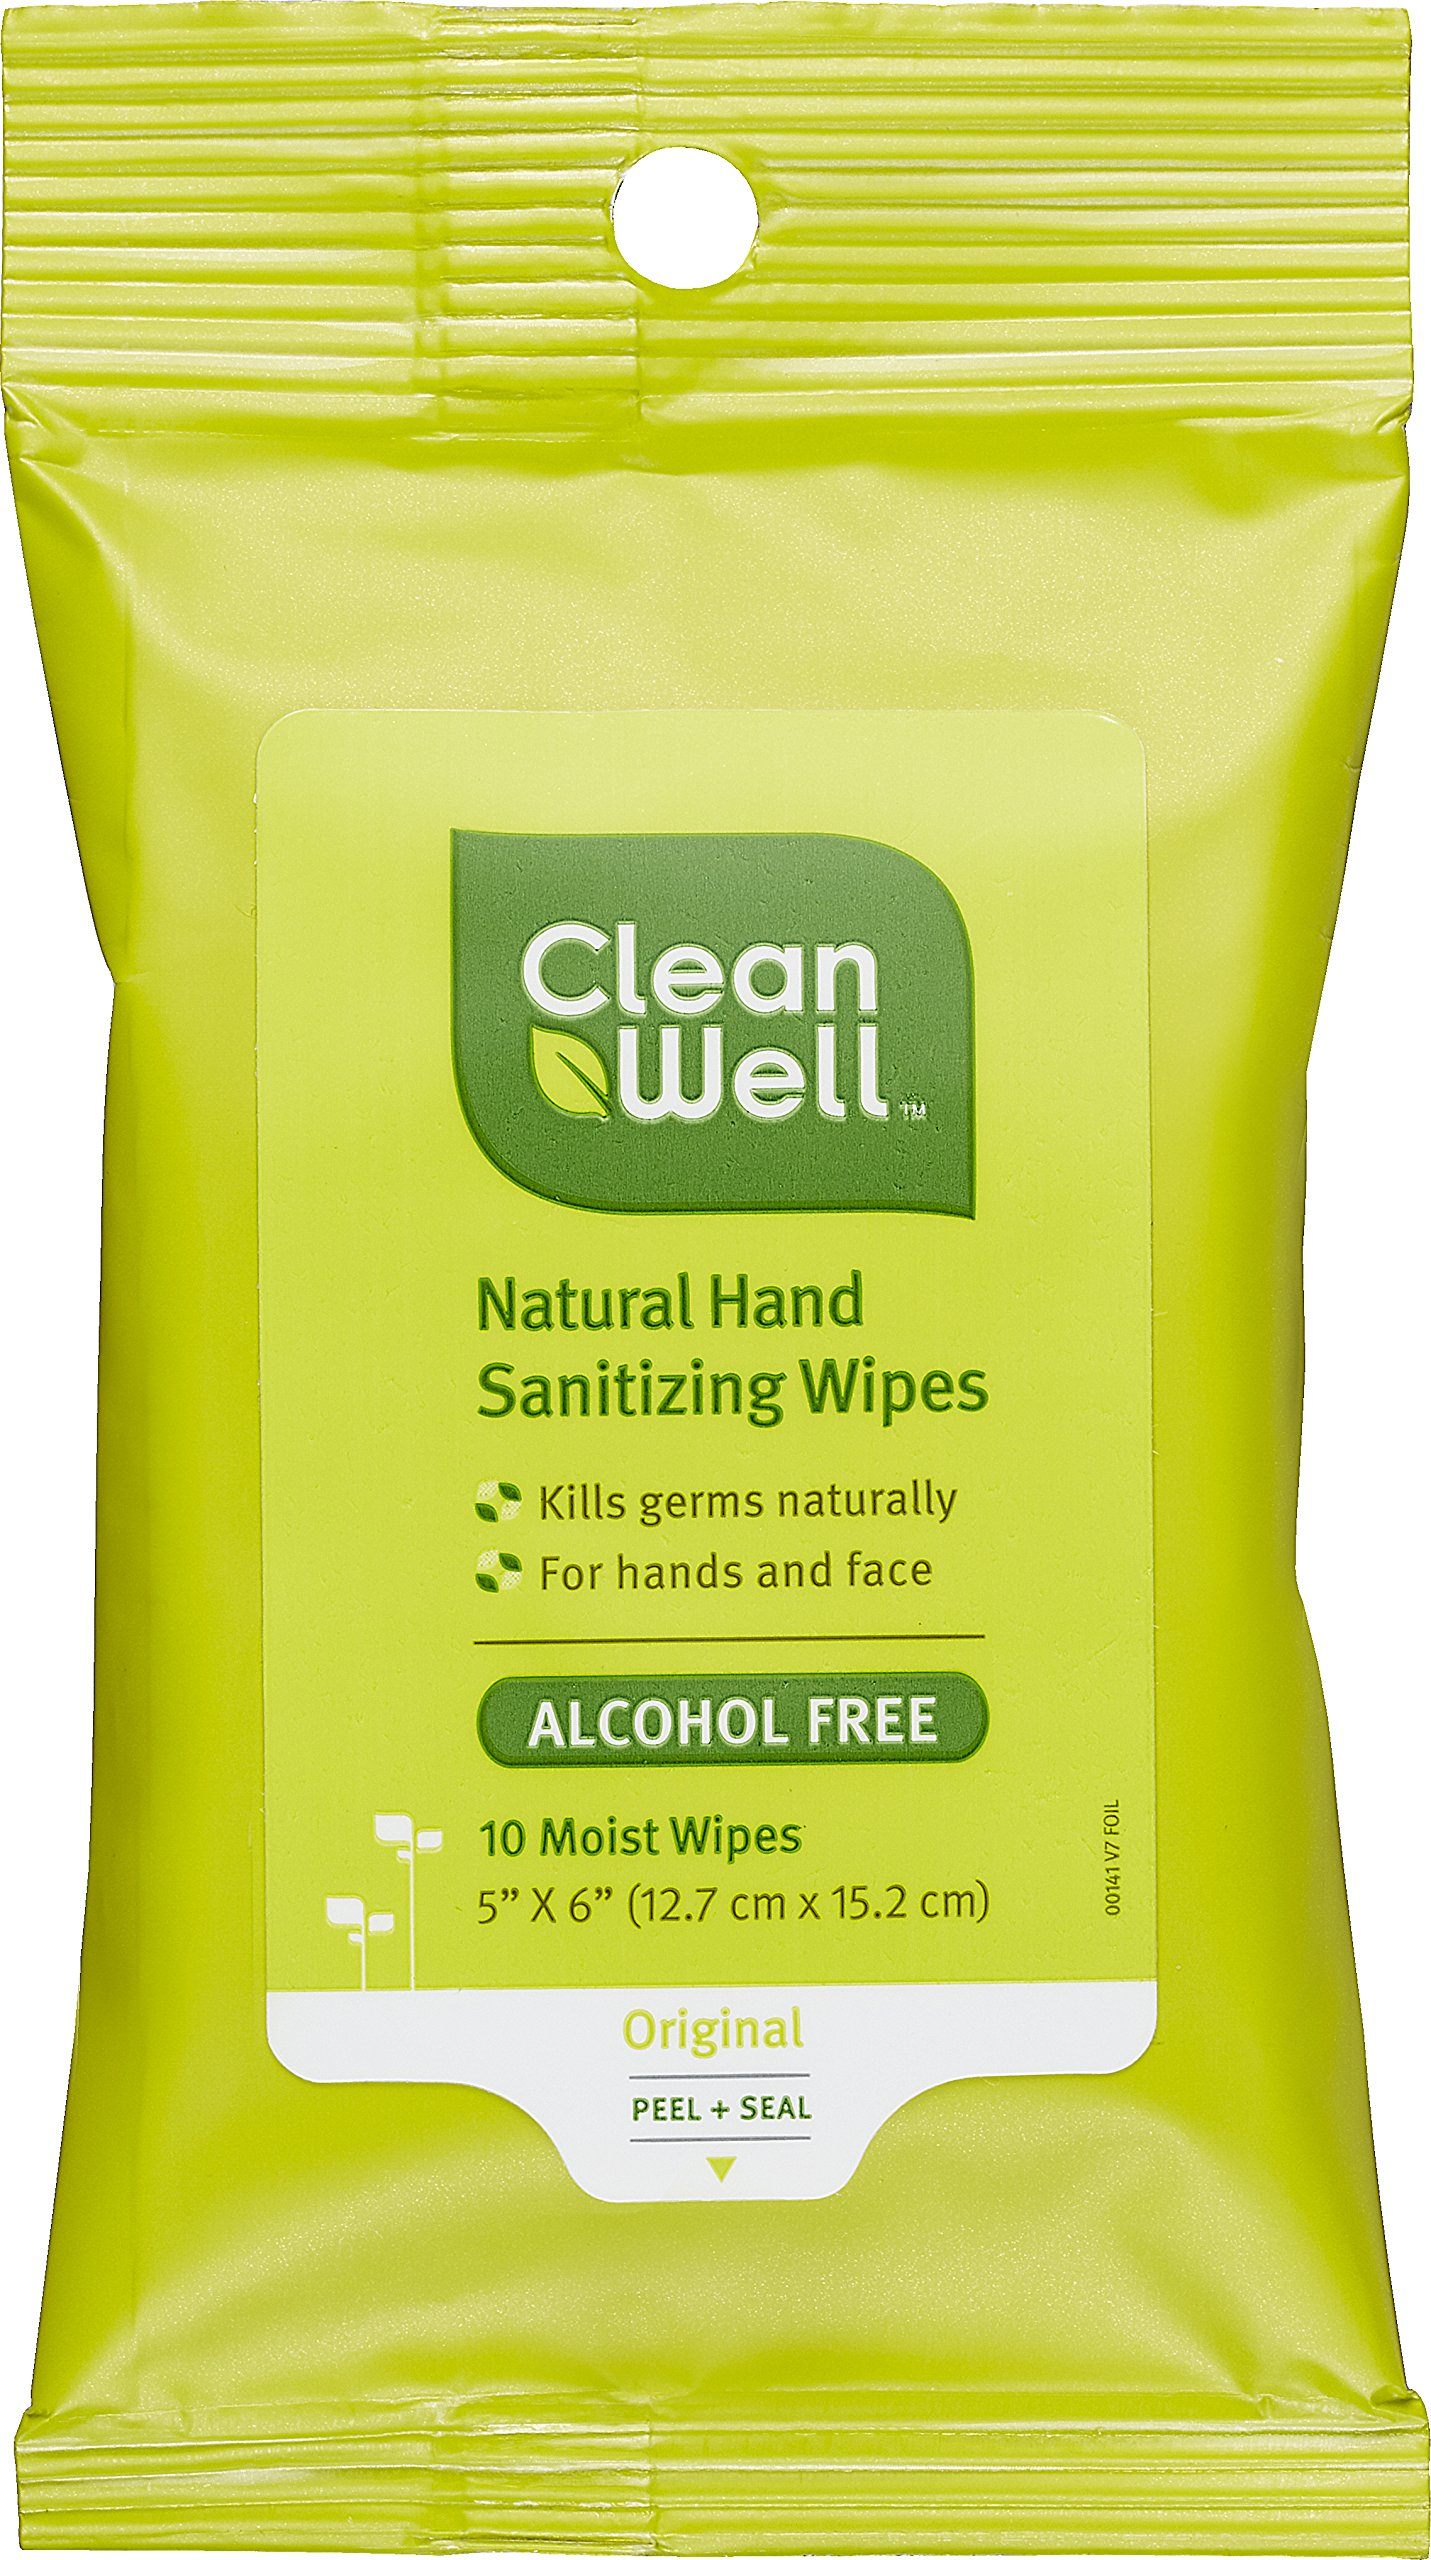 CleanWell Natural Hand Sanitizing Wipes - Original Scent, 10 Count (Pack of 8)